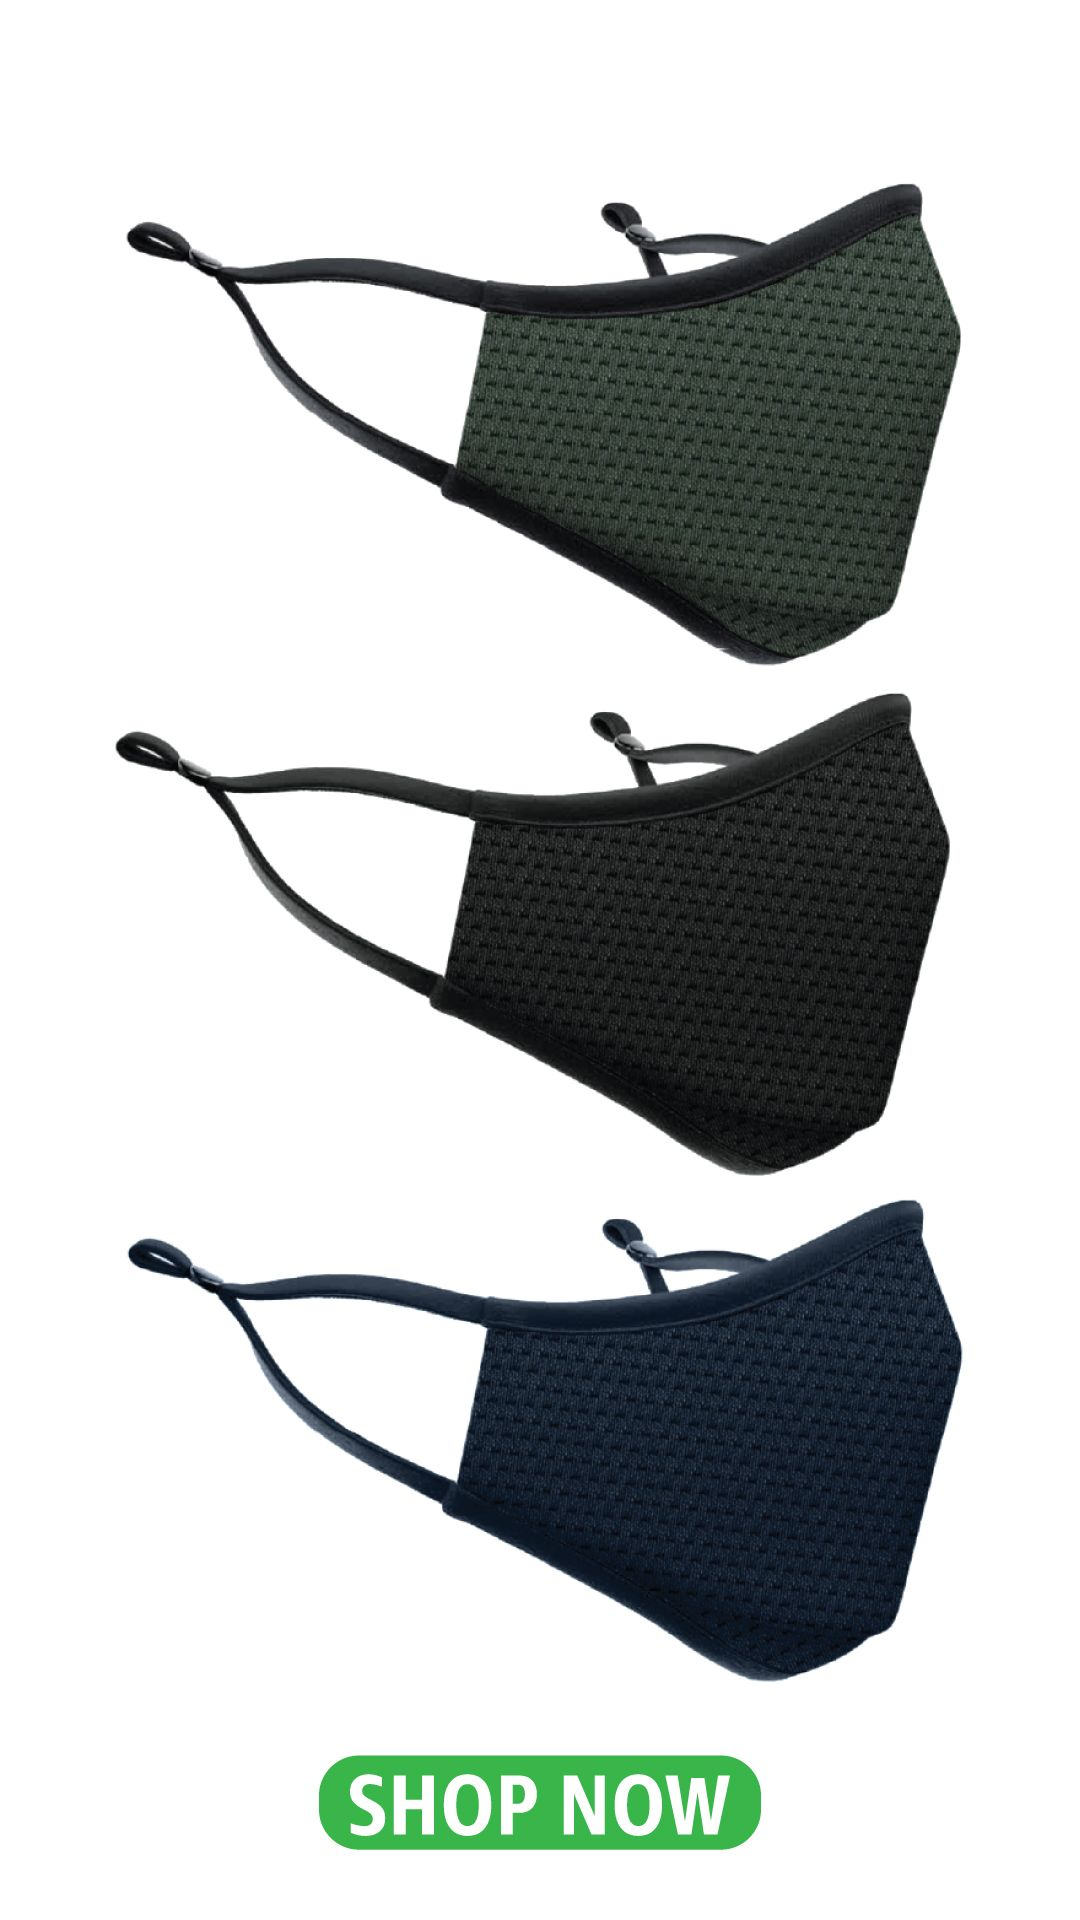 Mesh Performance Face Mask in 2020 Face mask, Mask, Face